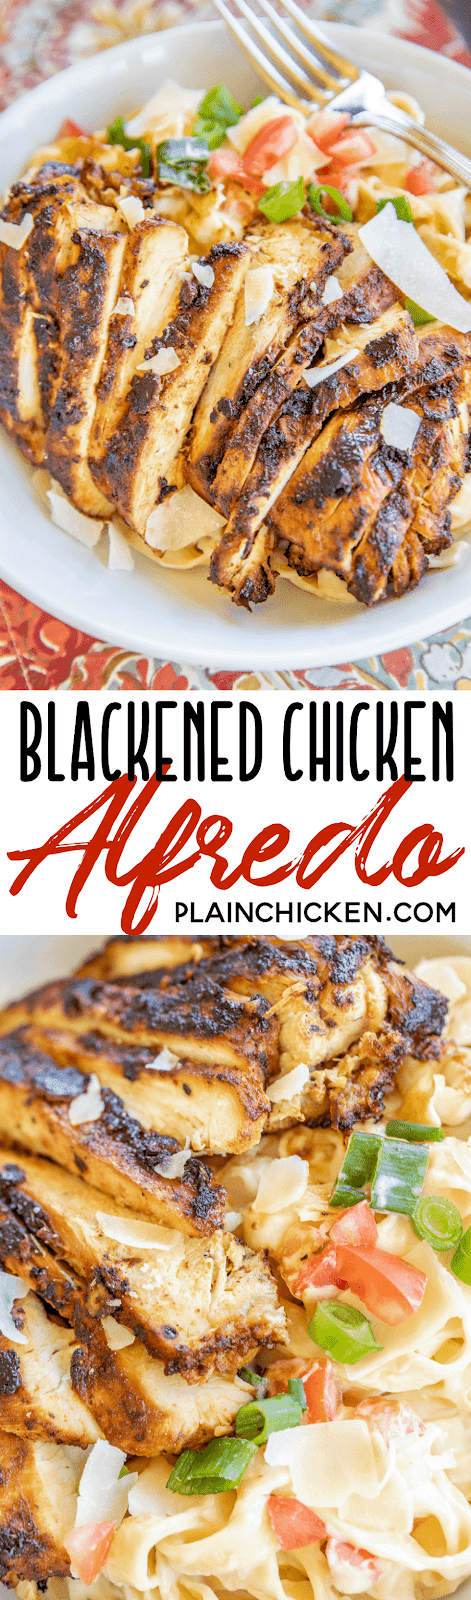 blackened chicken and pasta in a bowl